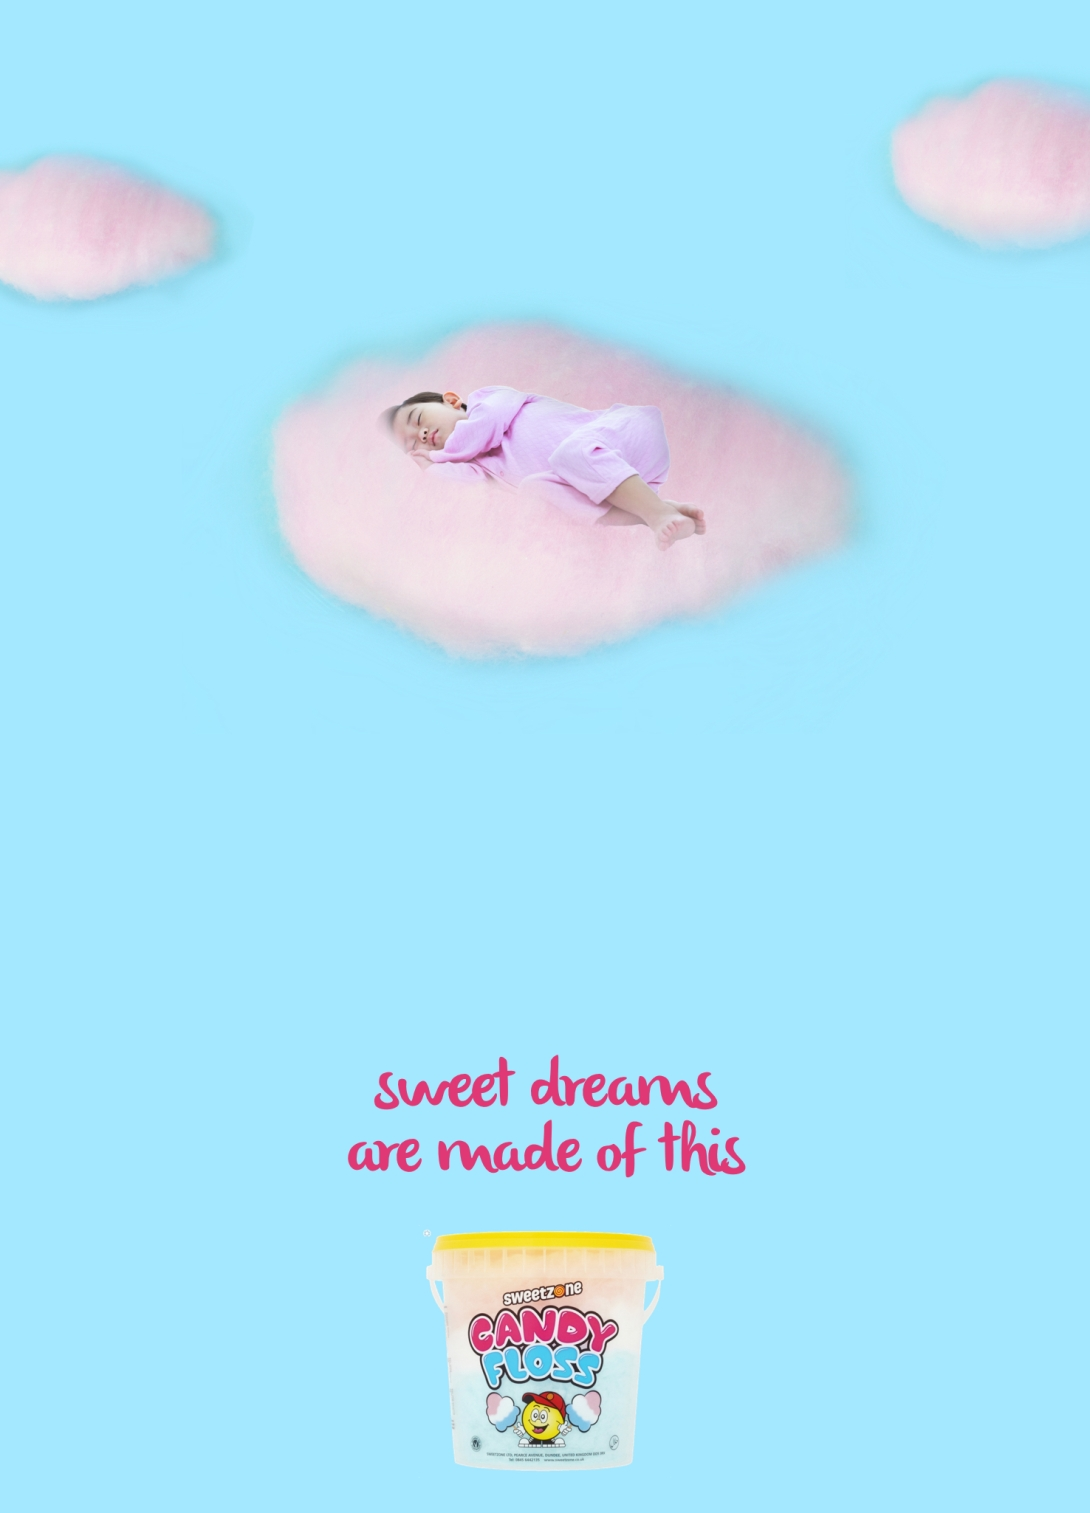 advertising idea for candy floss - sweet dreams are made of this